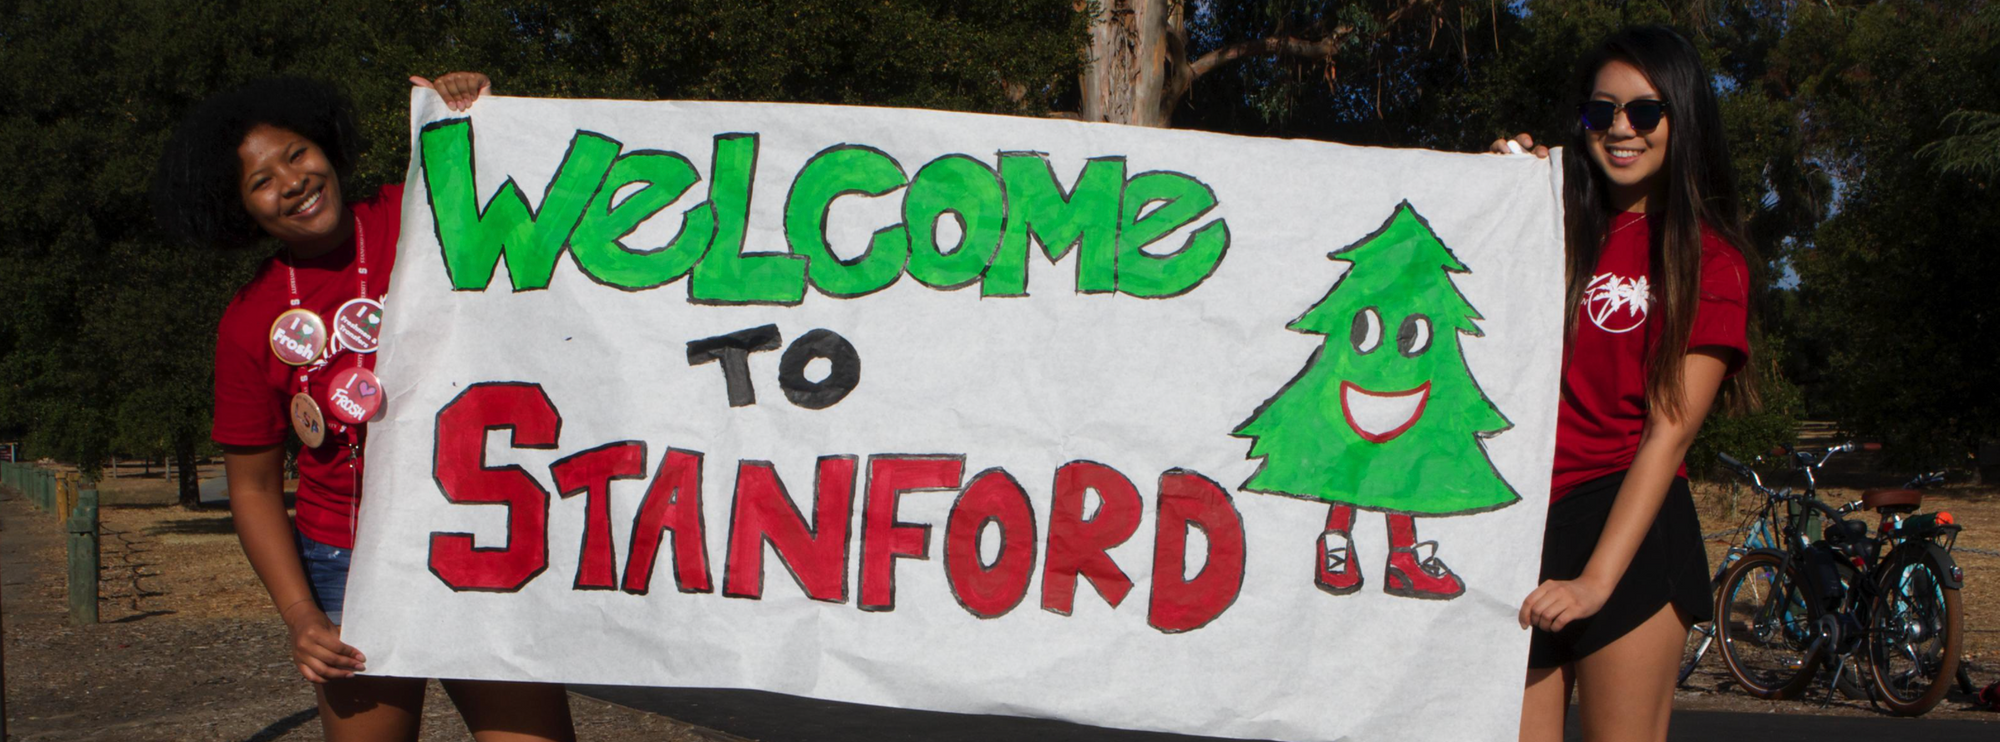 Inside Stanford's Woke New Student Orientation